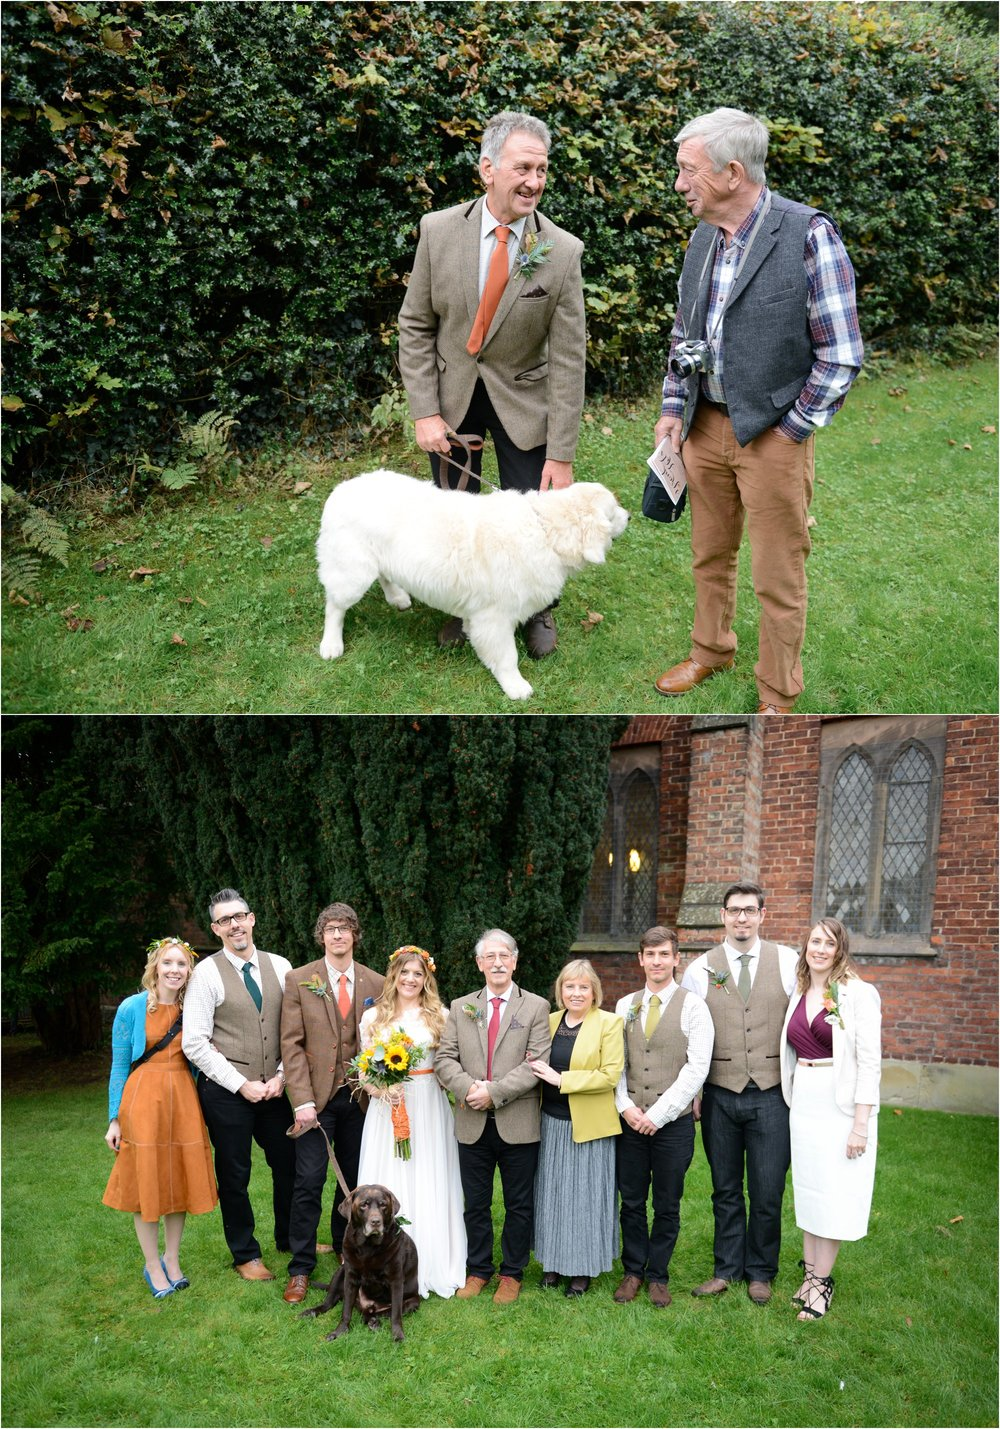 Styal_Wedding_Wilmslow_Cheshire_Autumn_Colourful_photography_0098.jpg